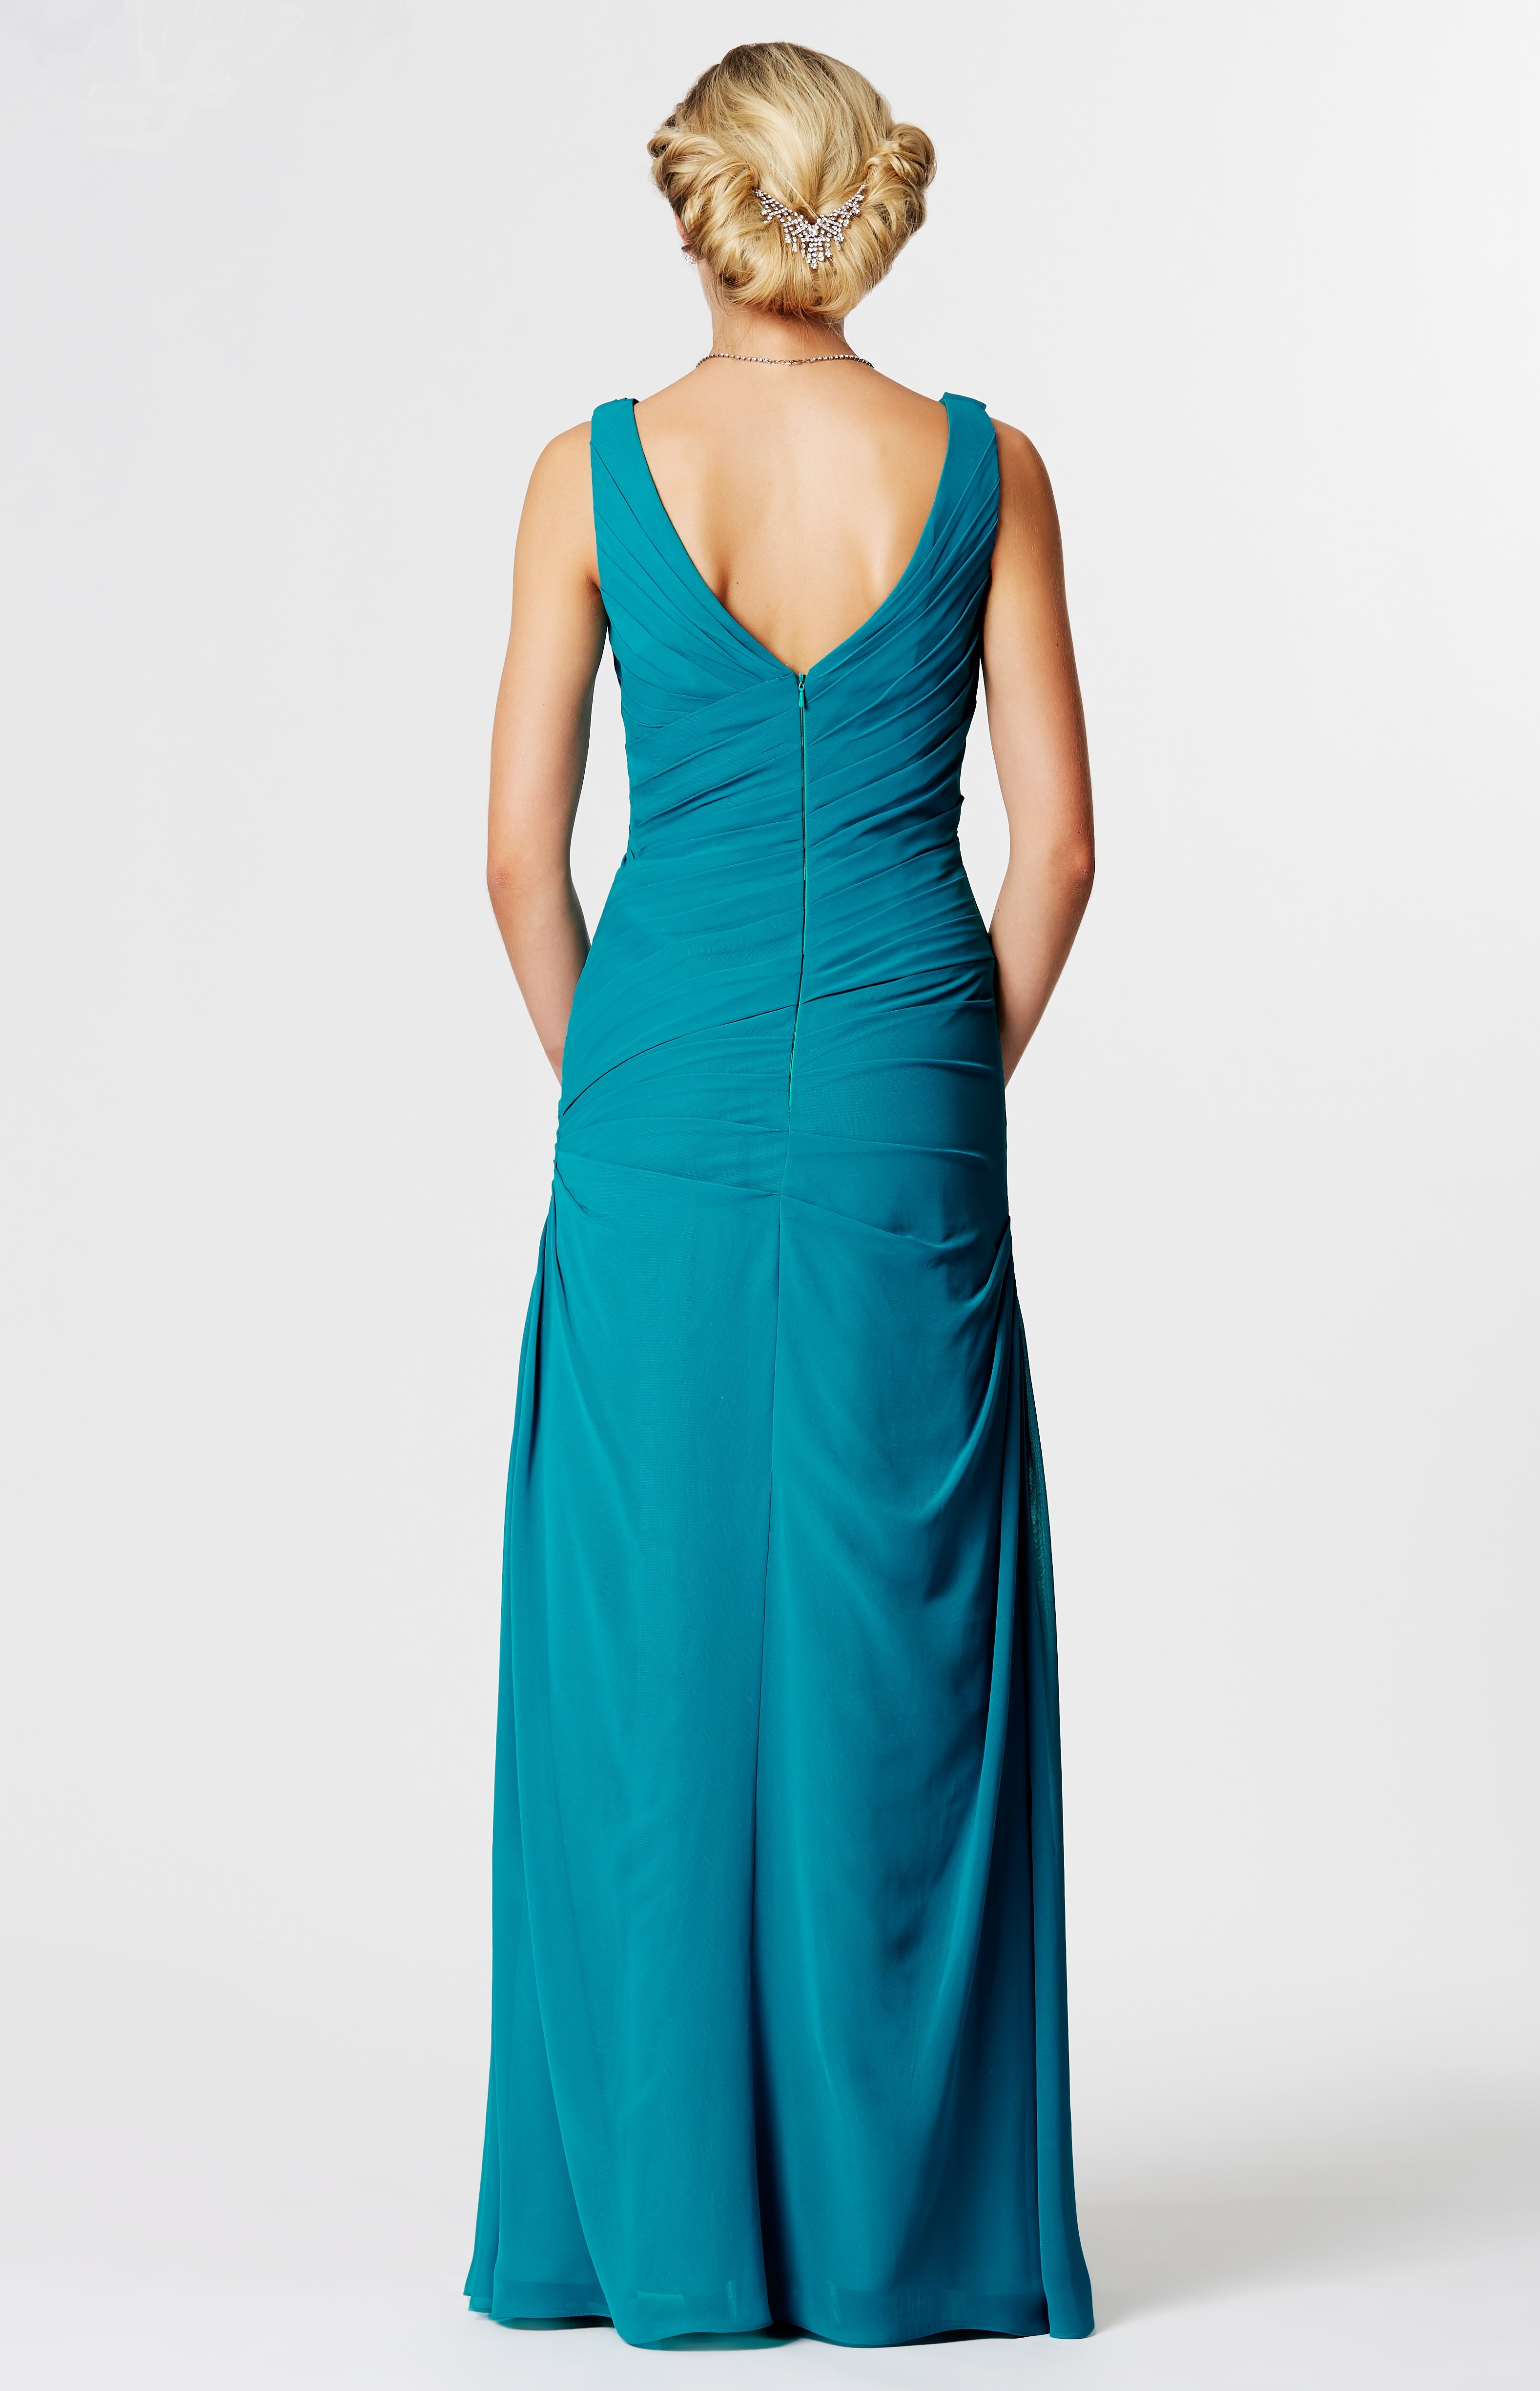 Plain, pleated chiffon, form flattering, evening gown at Ball Gown ...